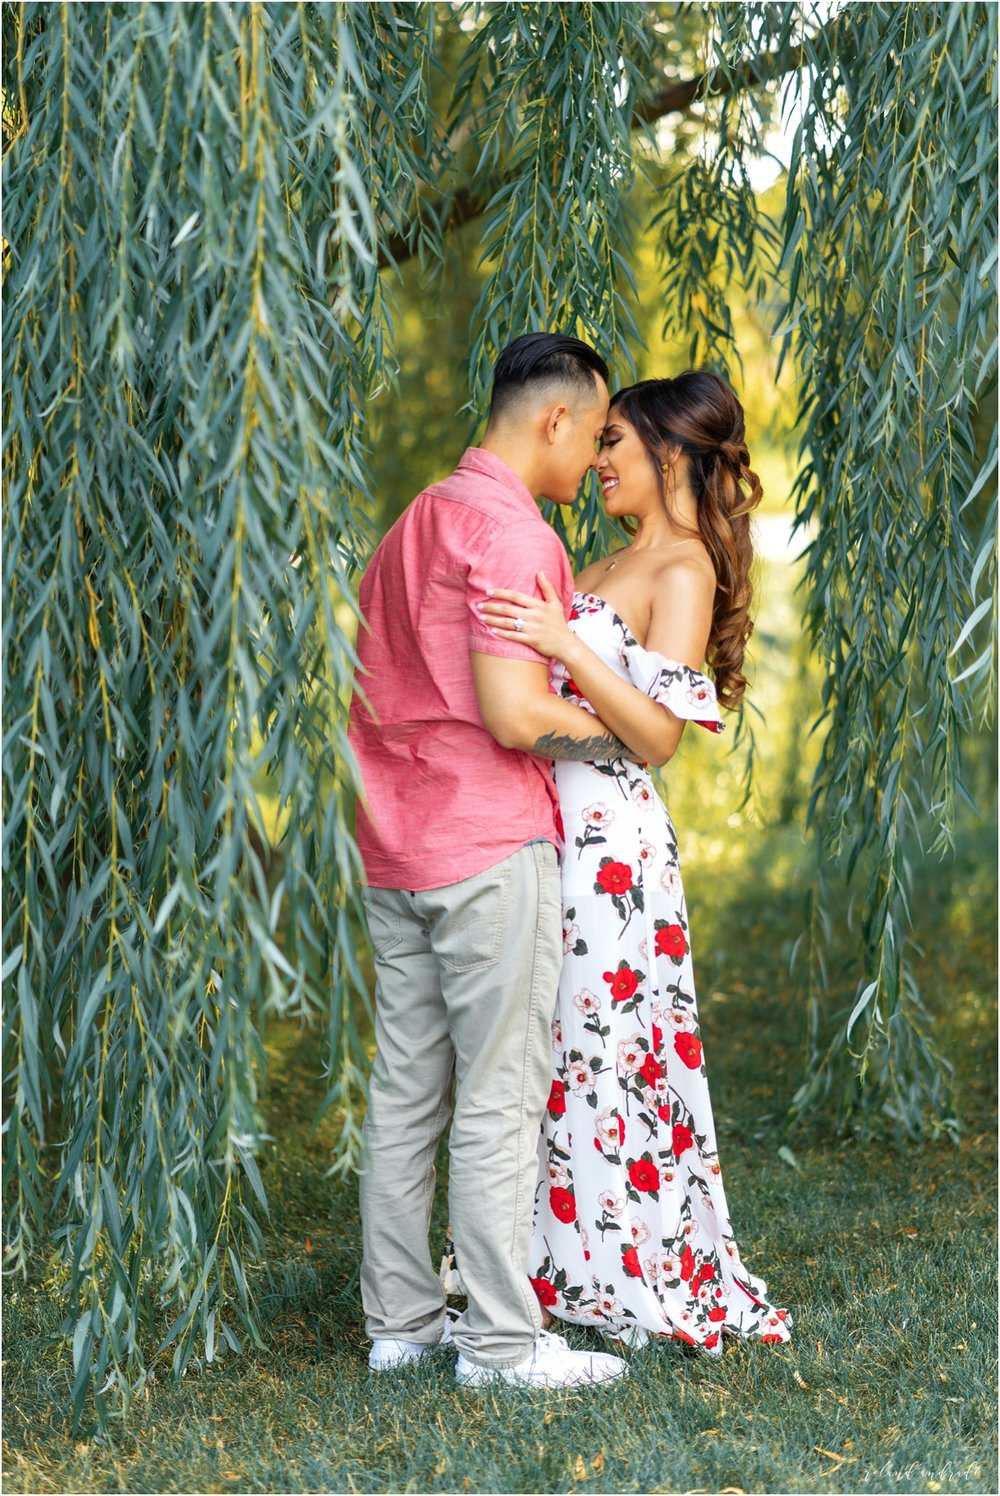 Cantigny Park Engagement Session, Wheaton Illinois Engagement Session, Chicago Wedding Photographer, Naperville Wedding Photographer, Aurora Wedding Photographer_0031.jpg